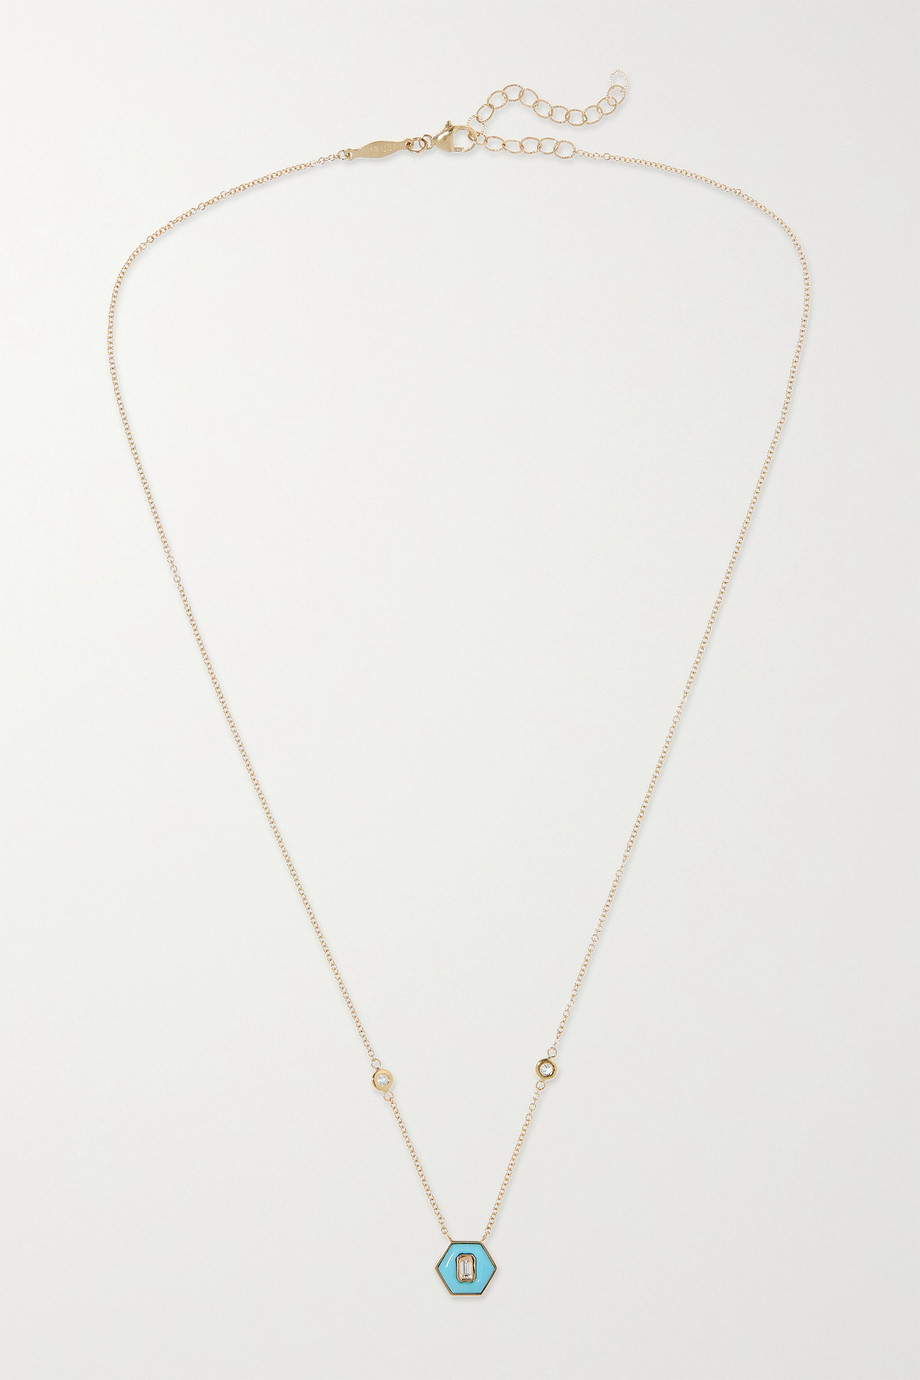 JACQUIE AICHE 14-karat gold, turquoise and diamond necklace